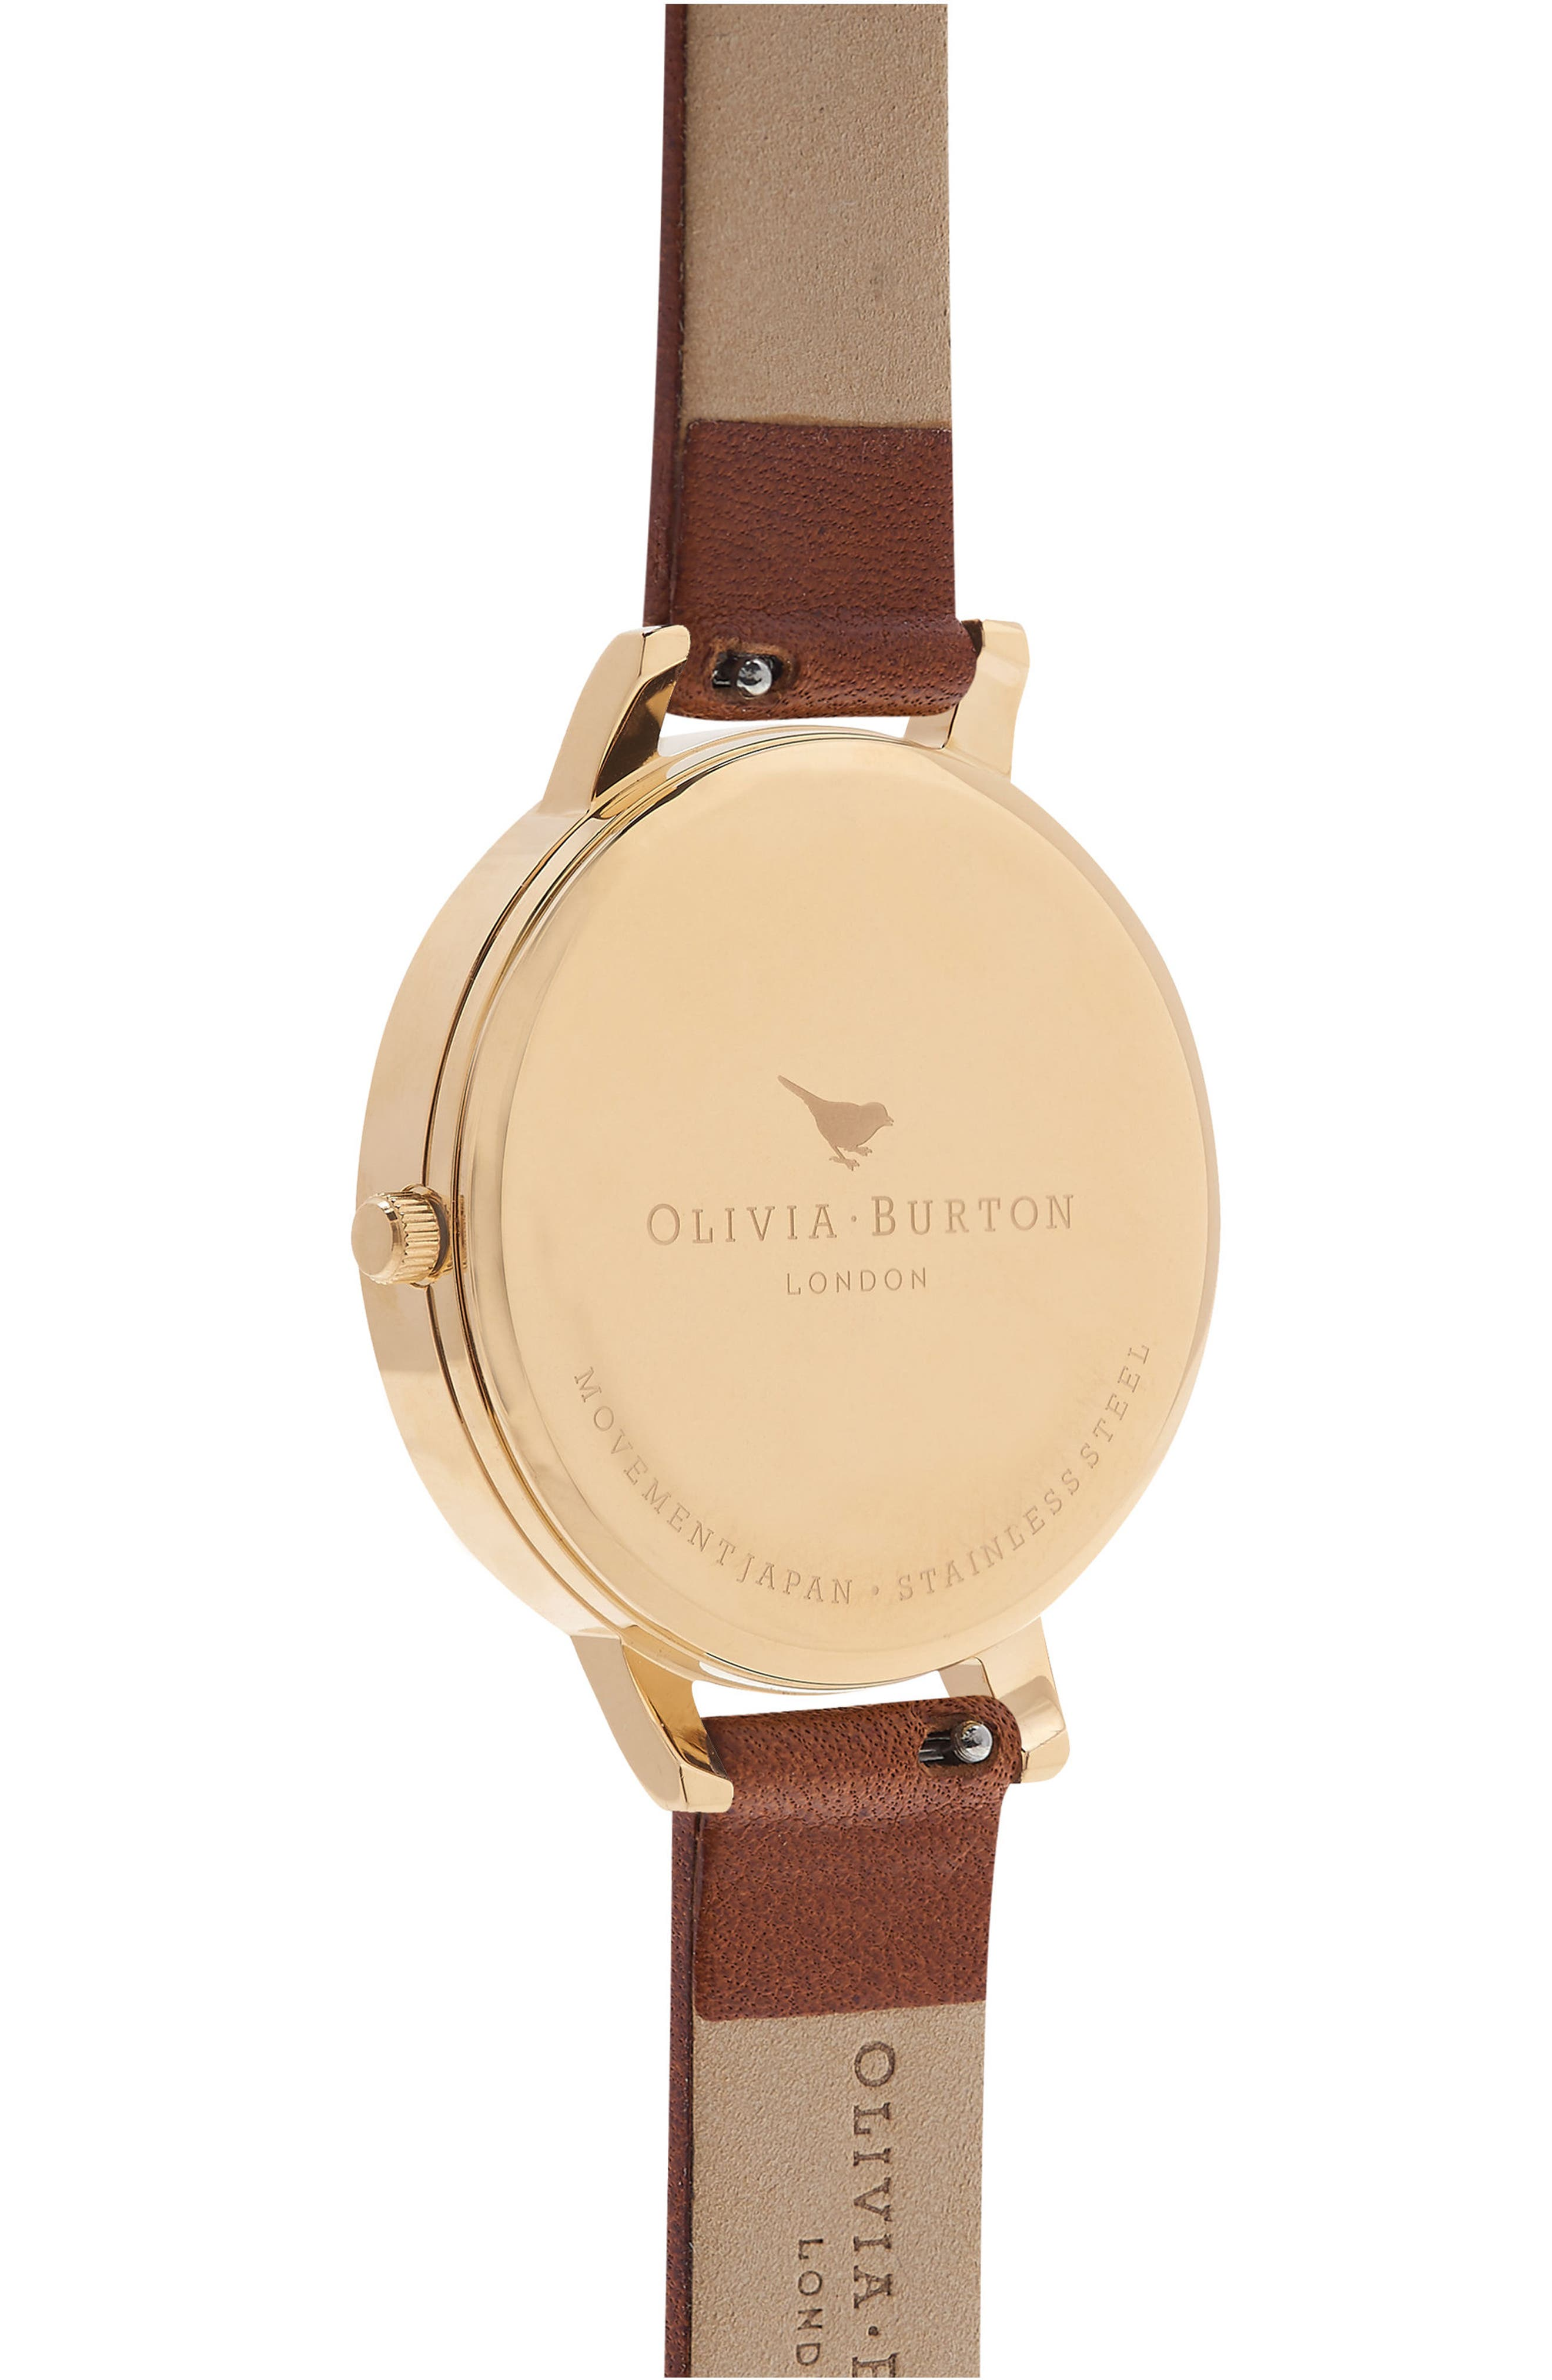 Enchanted Garden Leather Strap Watch, 38mm,                             Alternate thumbnail 3, color,                             Tan/ White Floral/ Gold